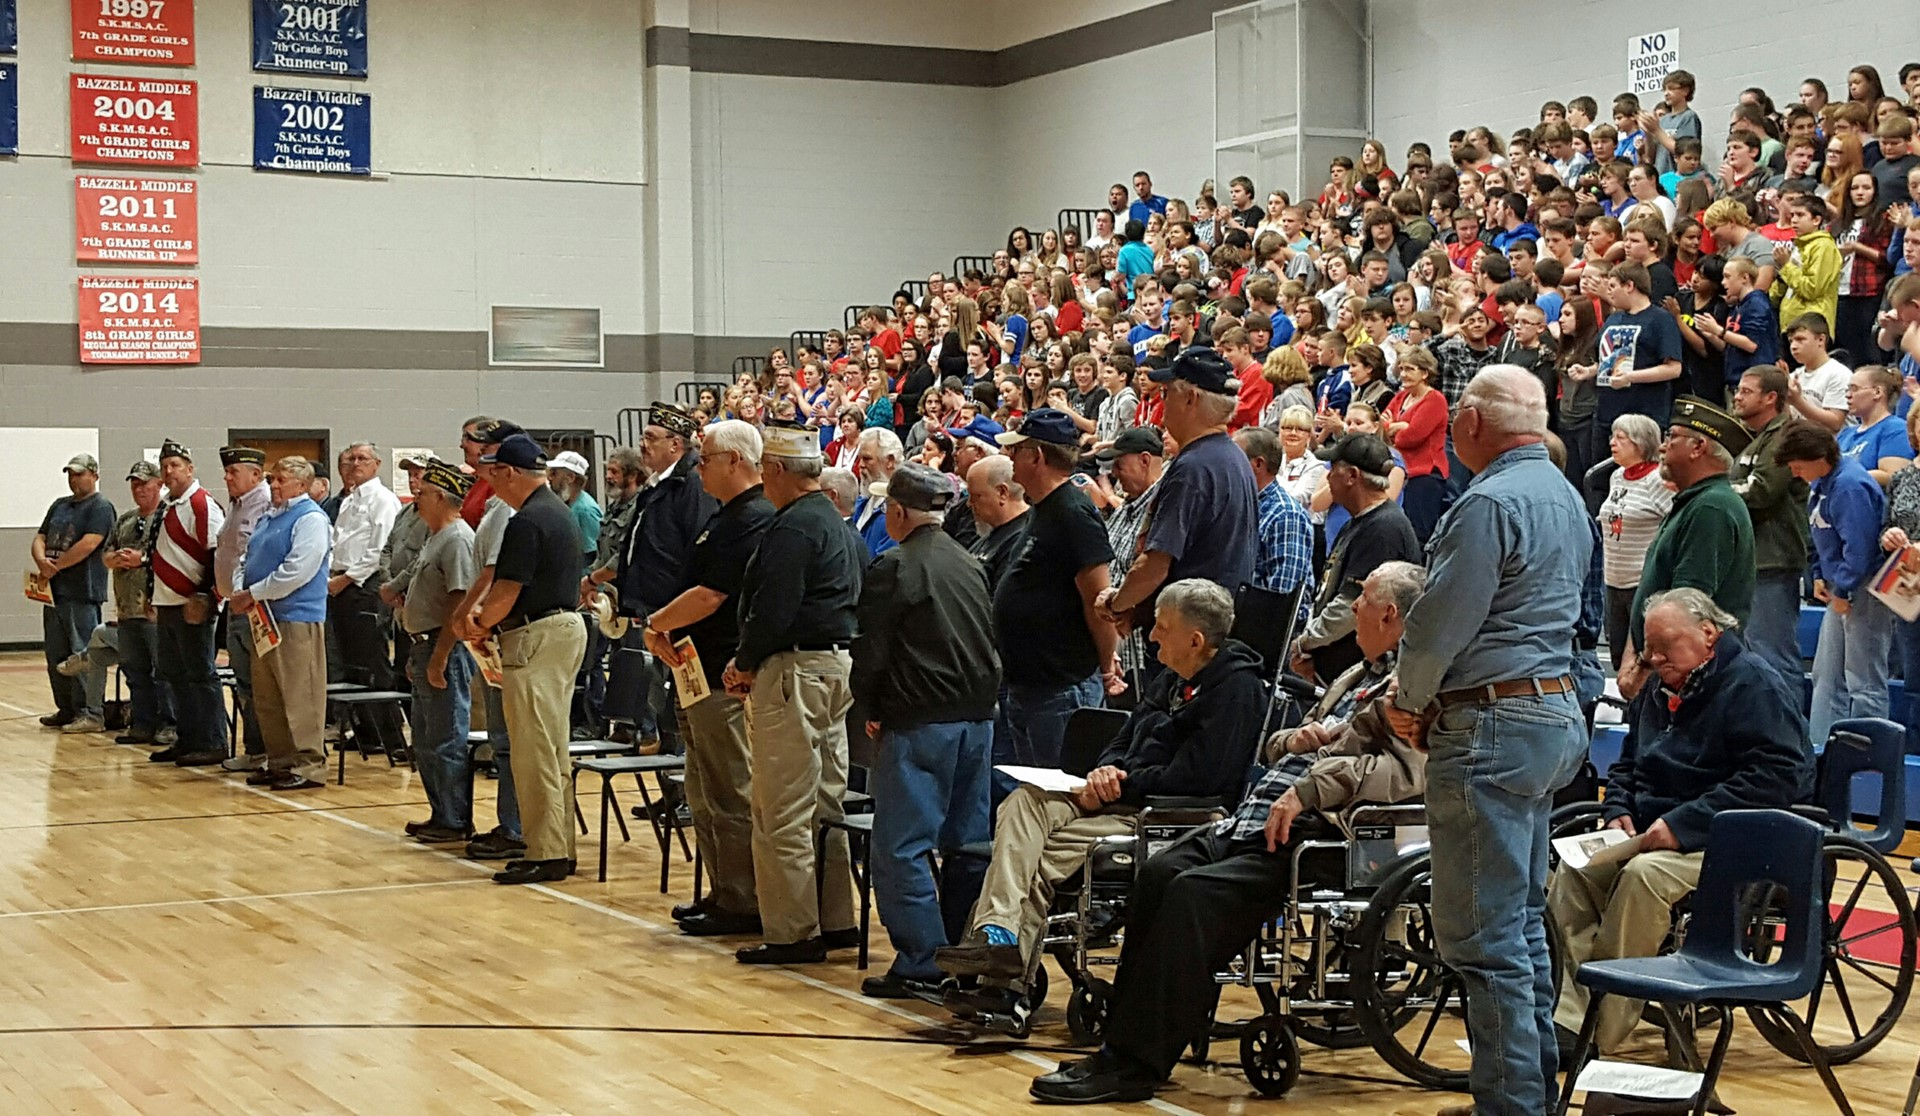 Bazzell students honor veterans on Veterans Day 2015.